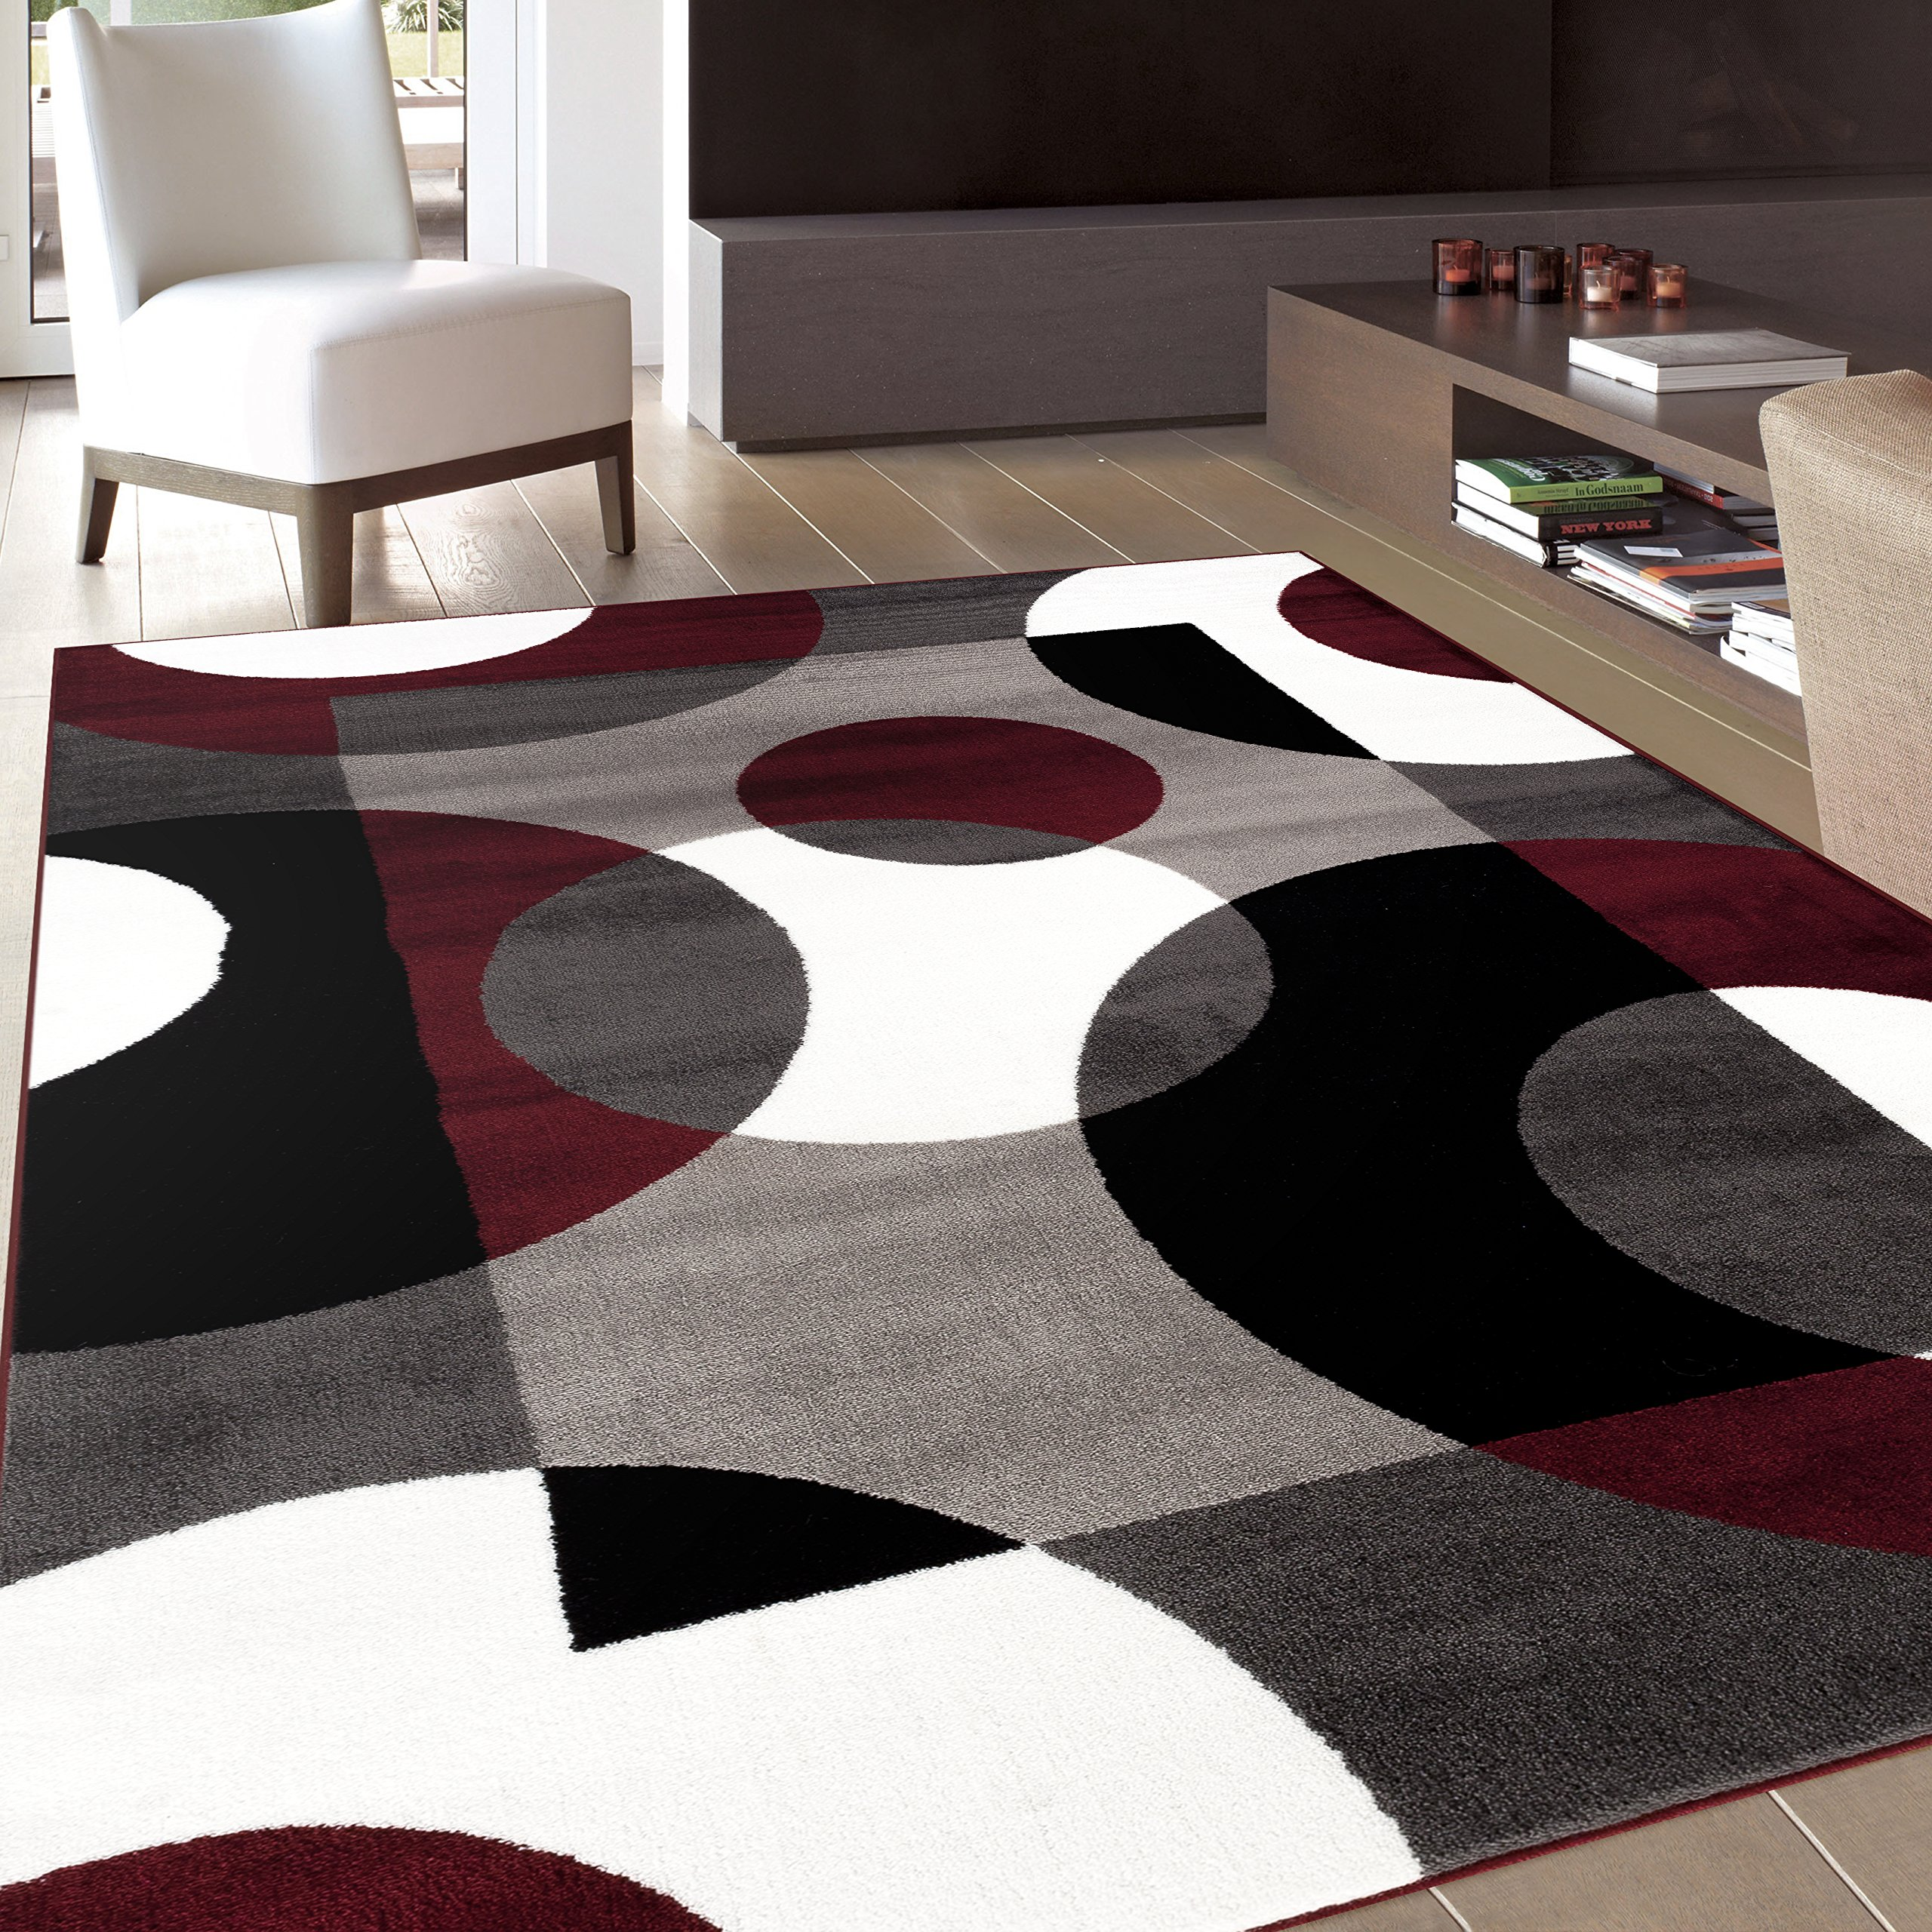 Maroon Grey And White Living Room: Modern Area Rug 5x7 Burgundy Black Grey White Plush